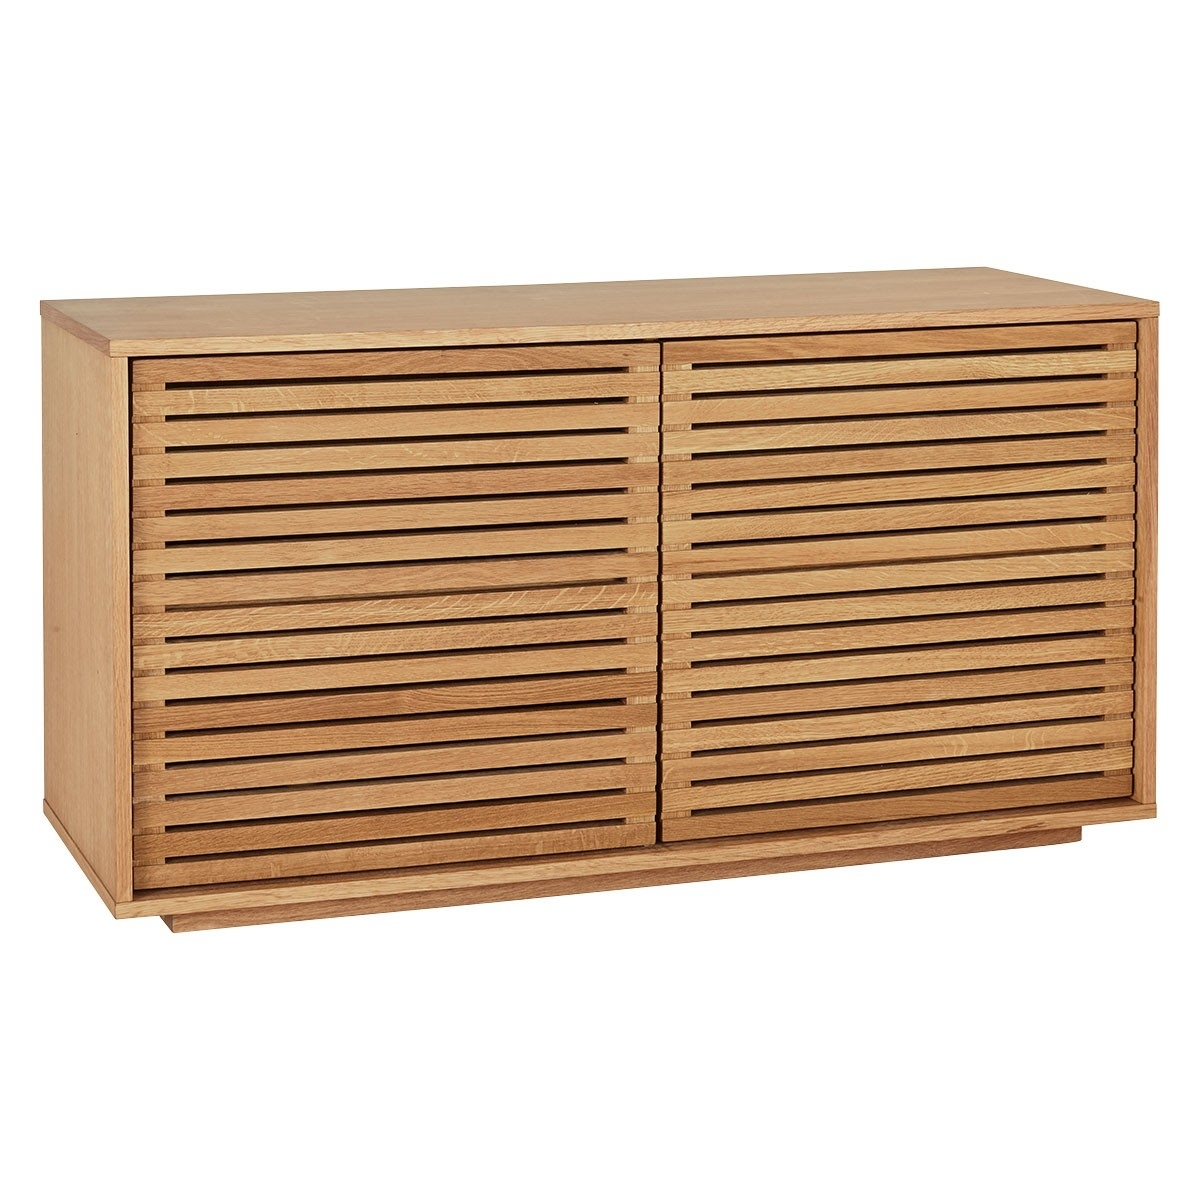 Max Oiled Oak 2 Door Sideboard With Slatted Doors | Buy Now At throughout 2-Door Mirror Front Sideboards (Image 19 of 30)